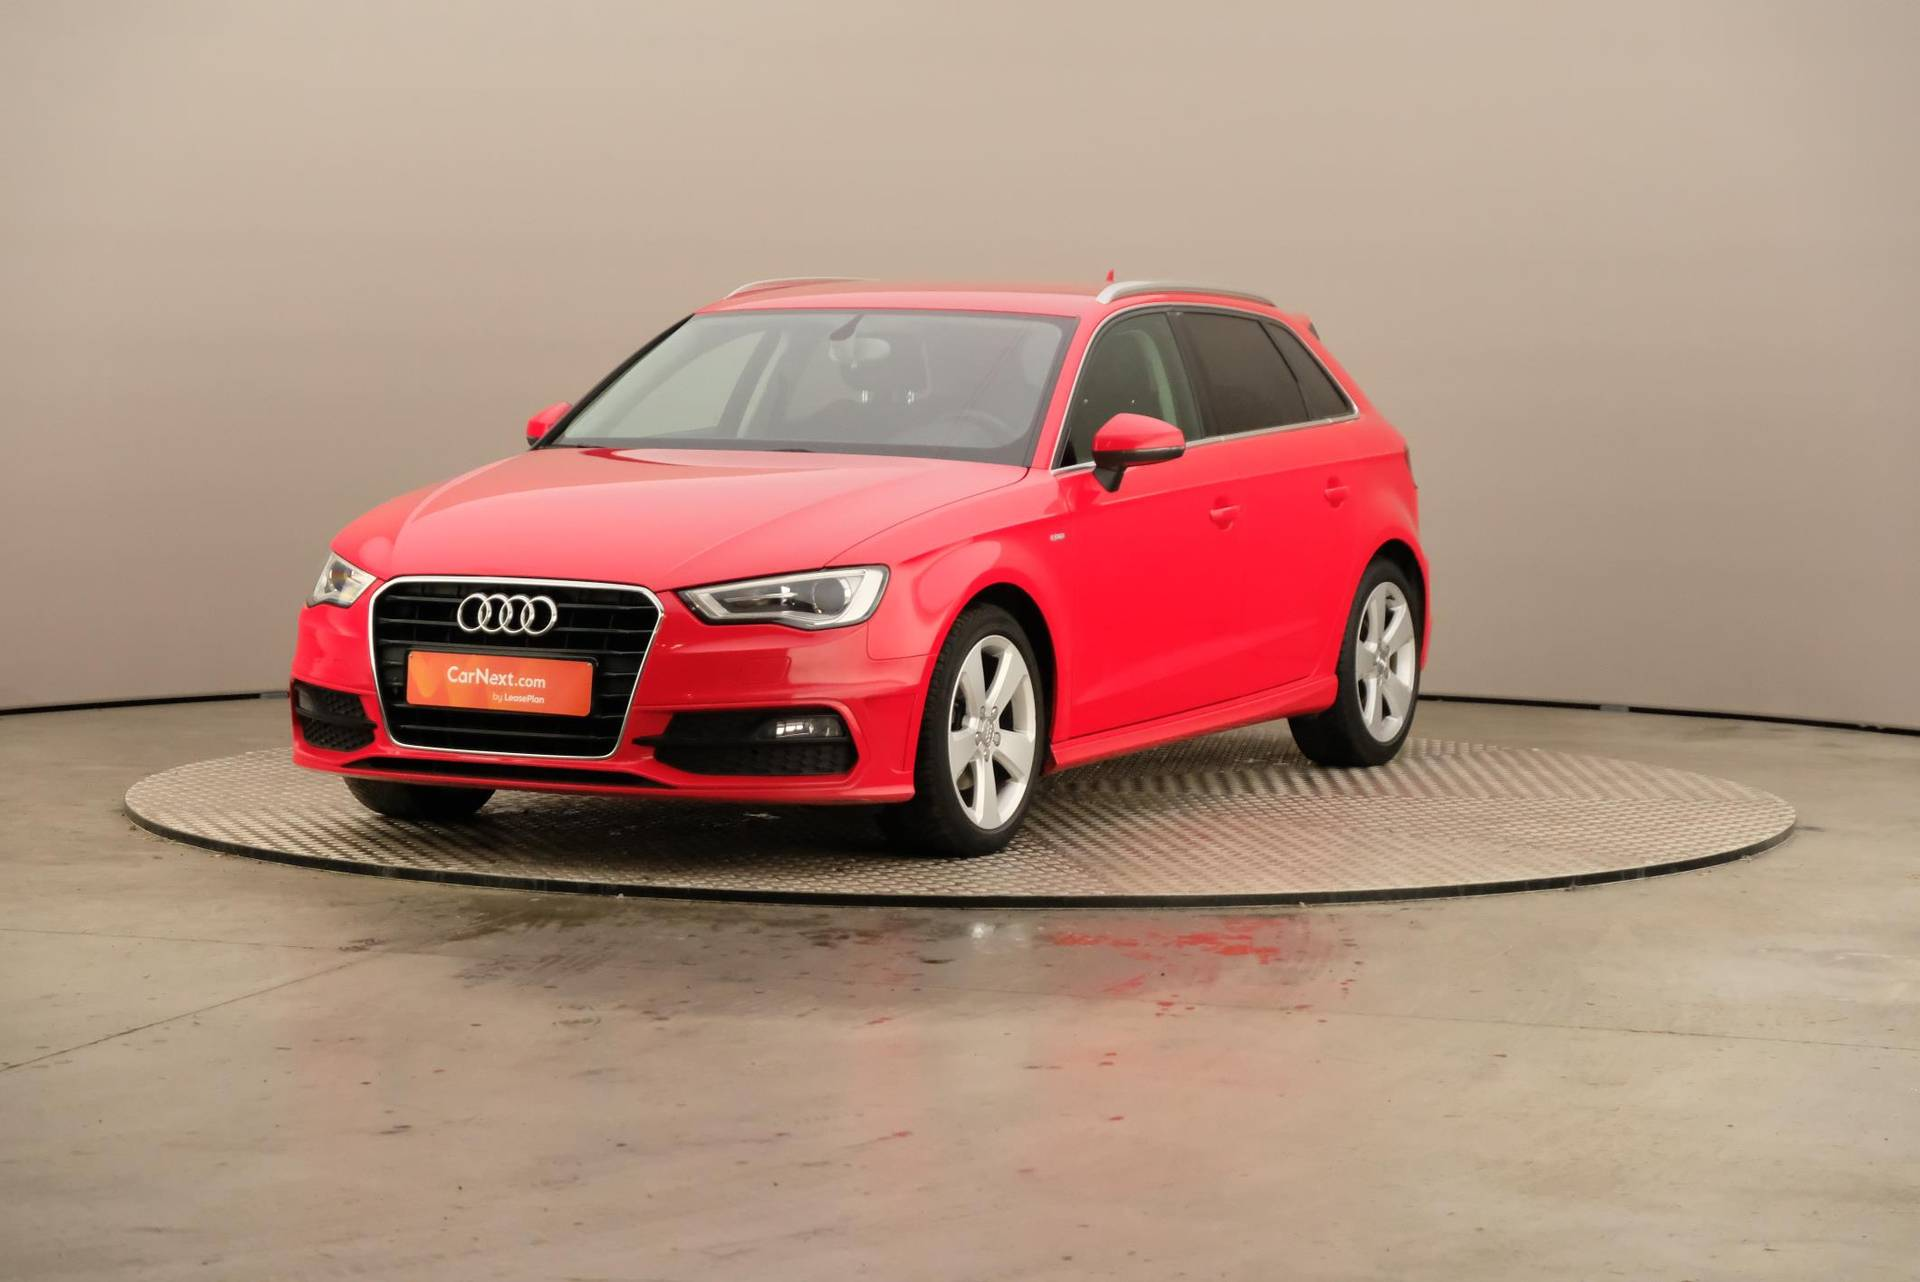 Audi A3 1.6 TDi Ambition PACK SPORT DESIGN XENON GPS PDC CRUISE CONTROL, 360-image34